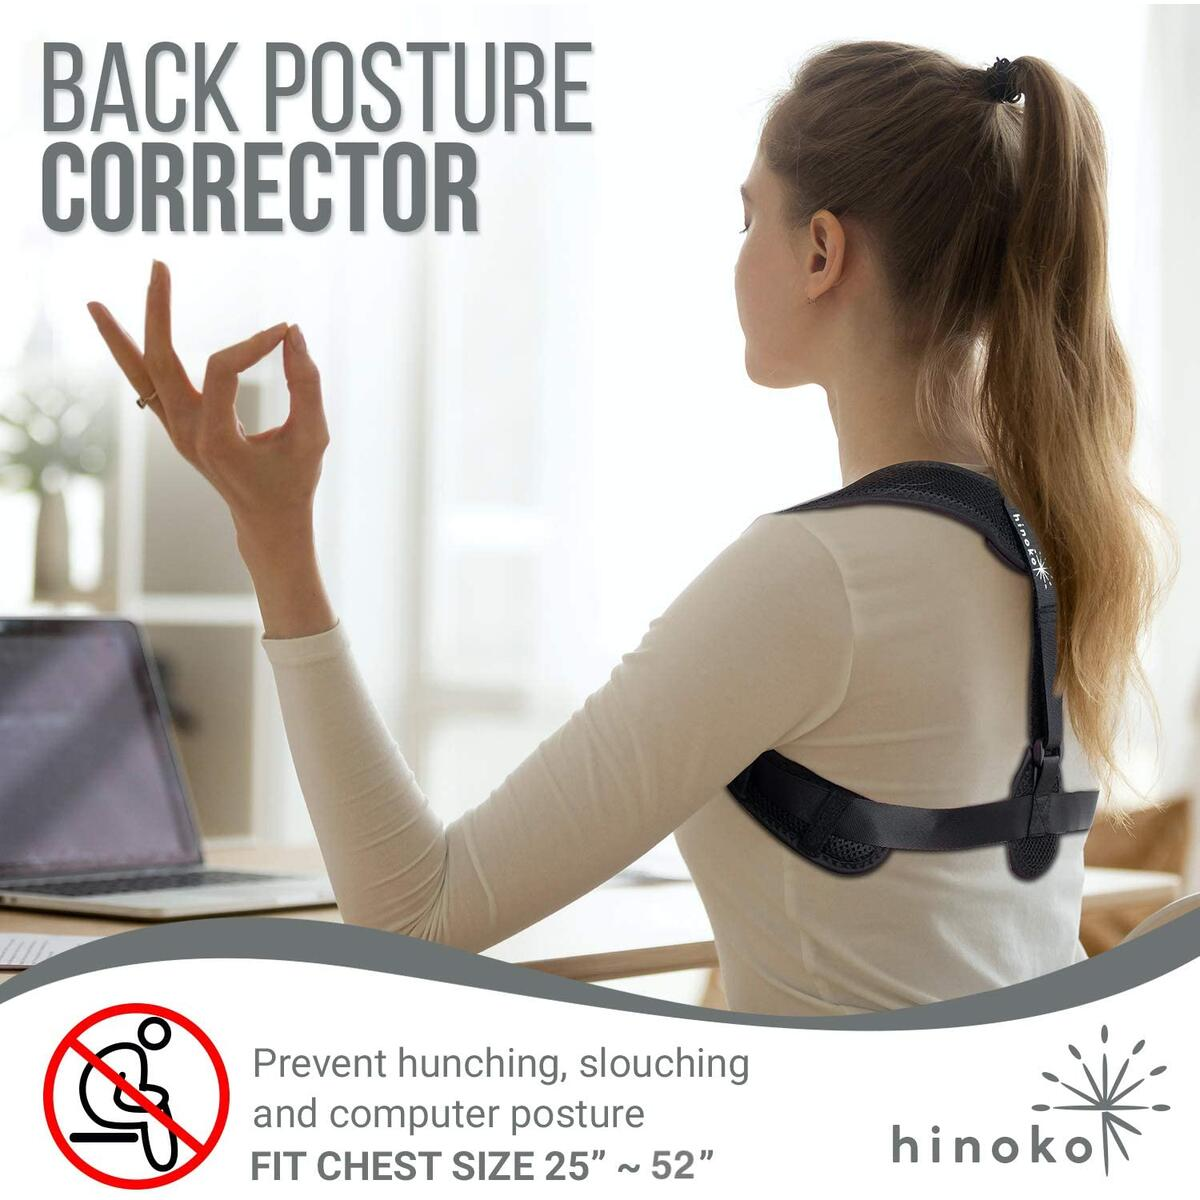 Posture Corrector for Men and Women - with Silicone Toe Separator Spacer - Over Shoulder Back Support Brace - Straightener to Improve Slouching, Neck Pain Relief - Comfortable Over or Under Clothes - Fits 25